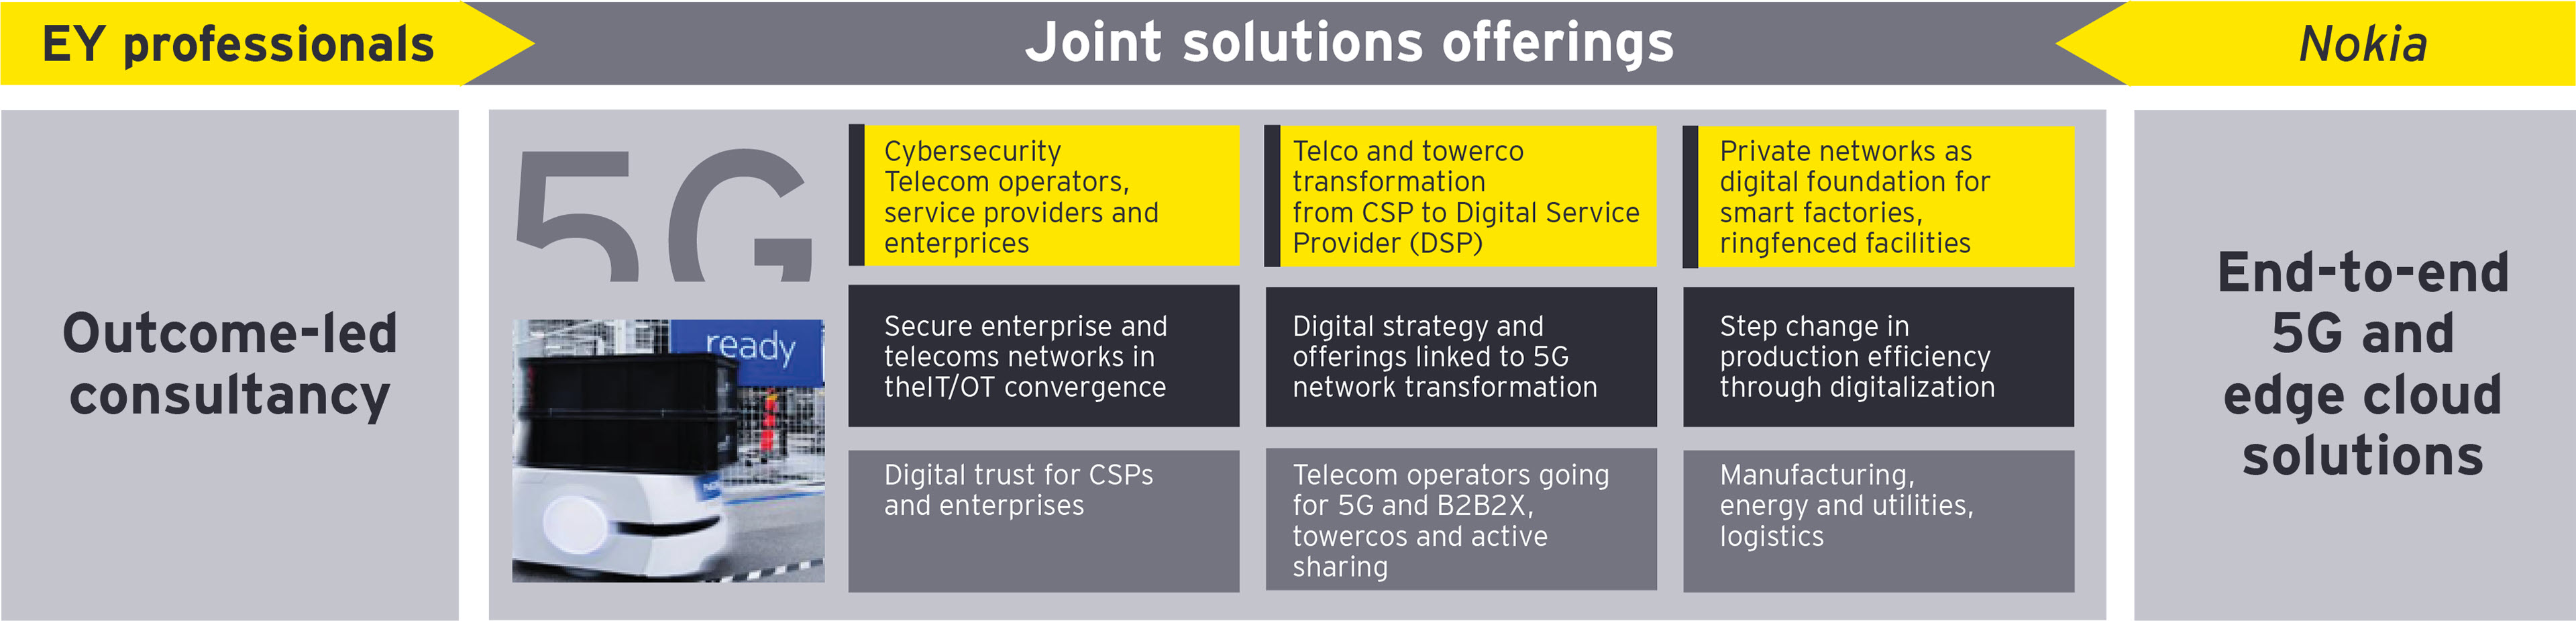 EY Nokia Alliance Joint Solutions